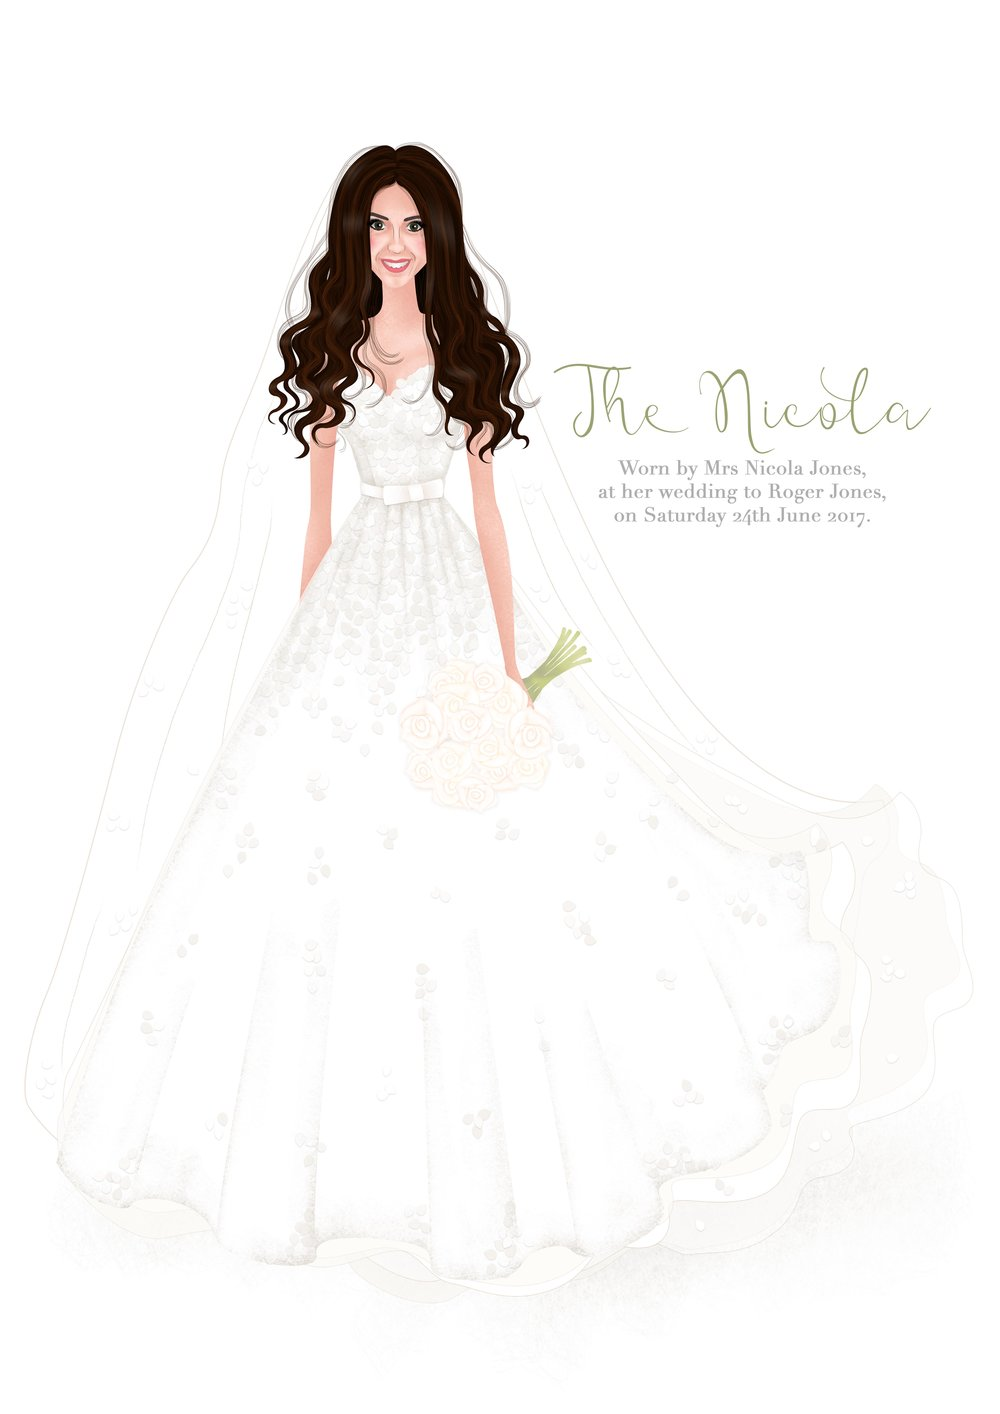 SAMARA PATEMAN - BRIDE PORTRAIT - ARTWORK - A2.jpg